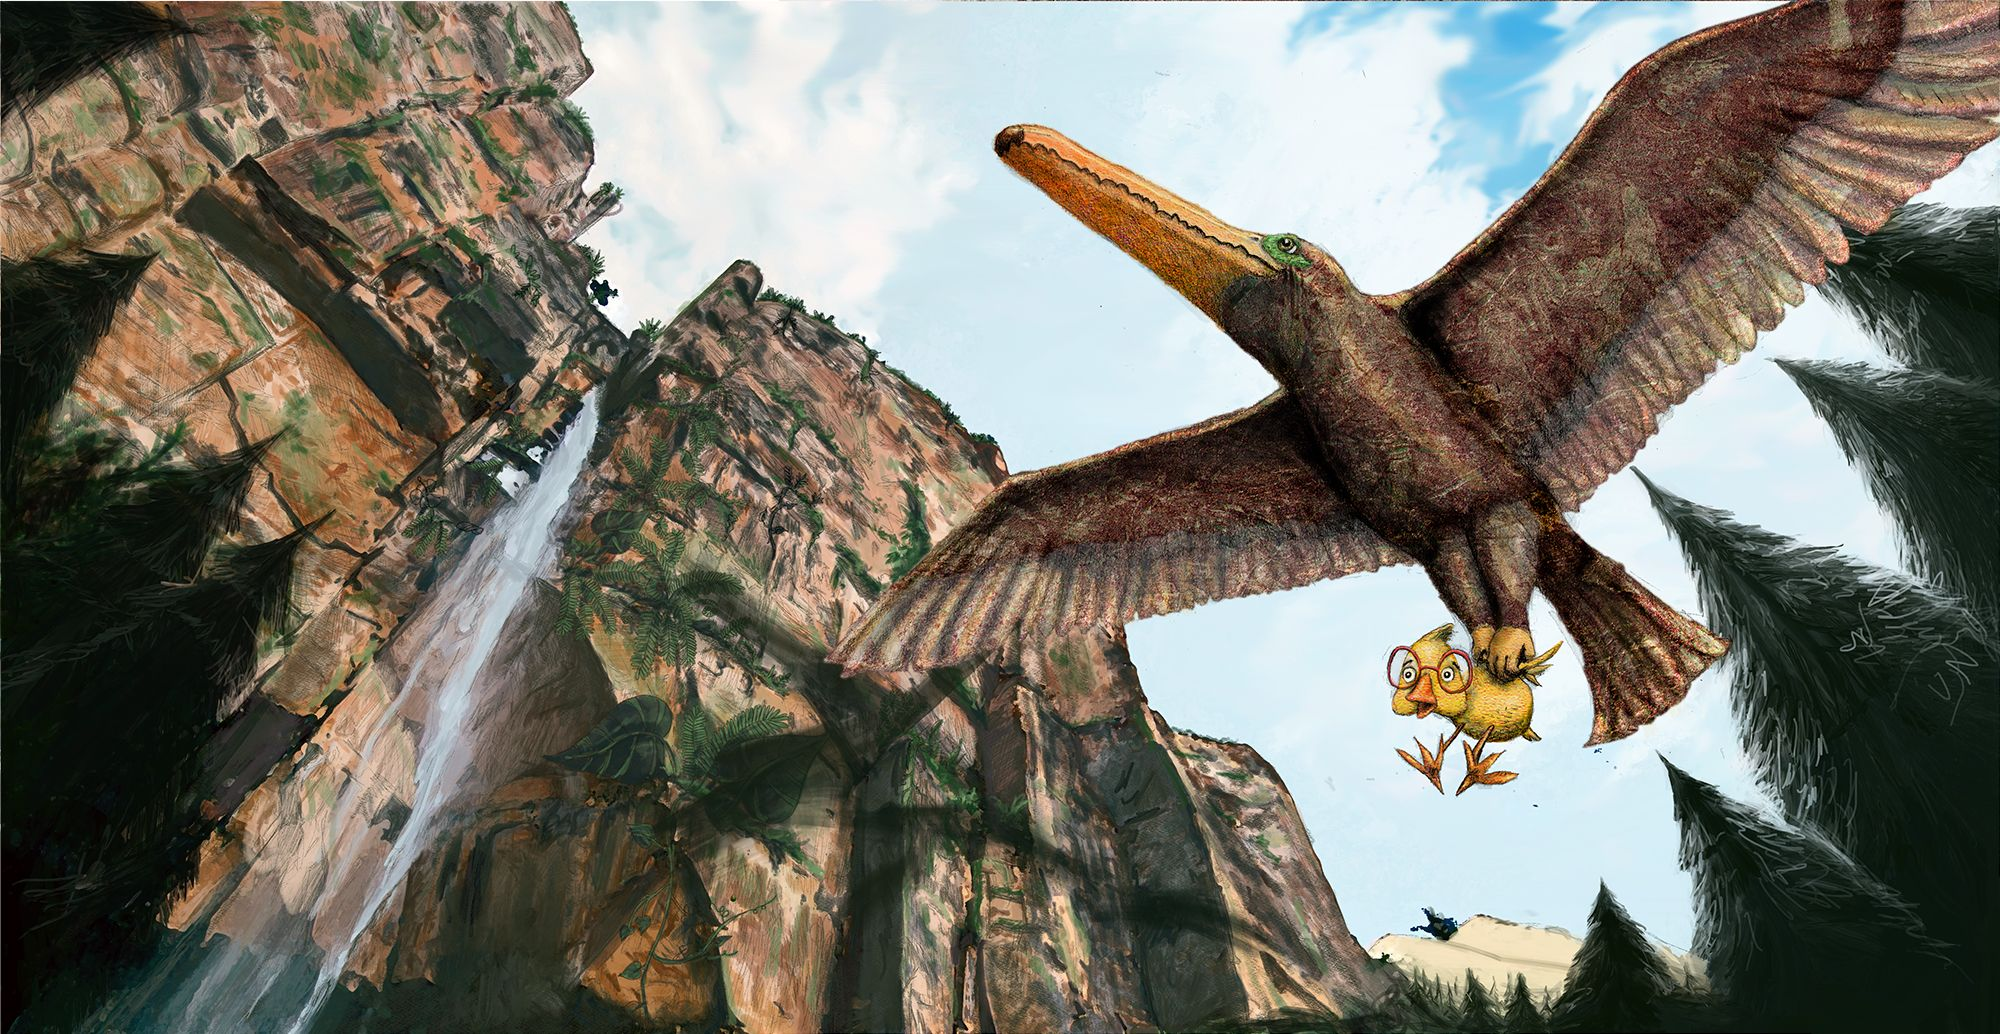 Nervous chick with glasses gets carried through forest/cliff area by a giant flying dinosaur